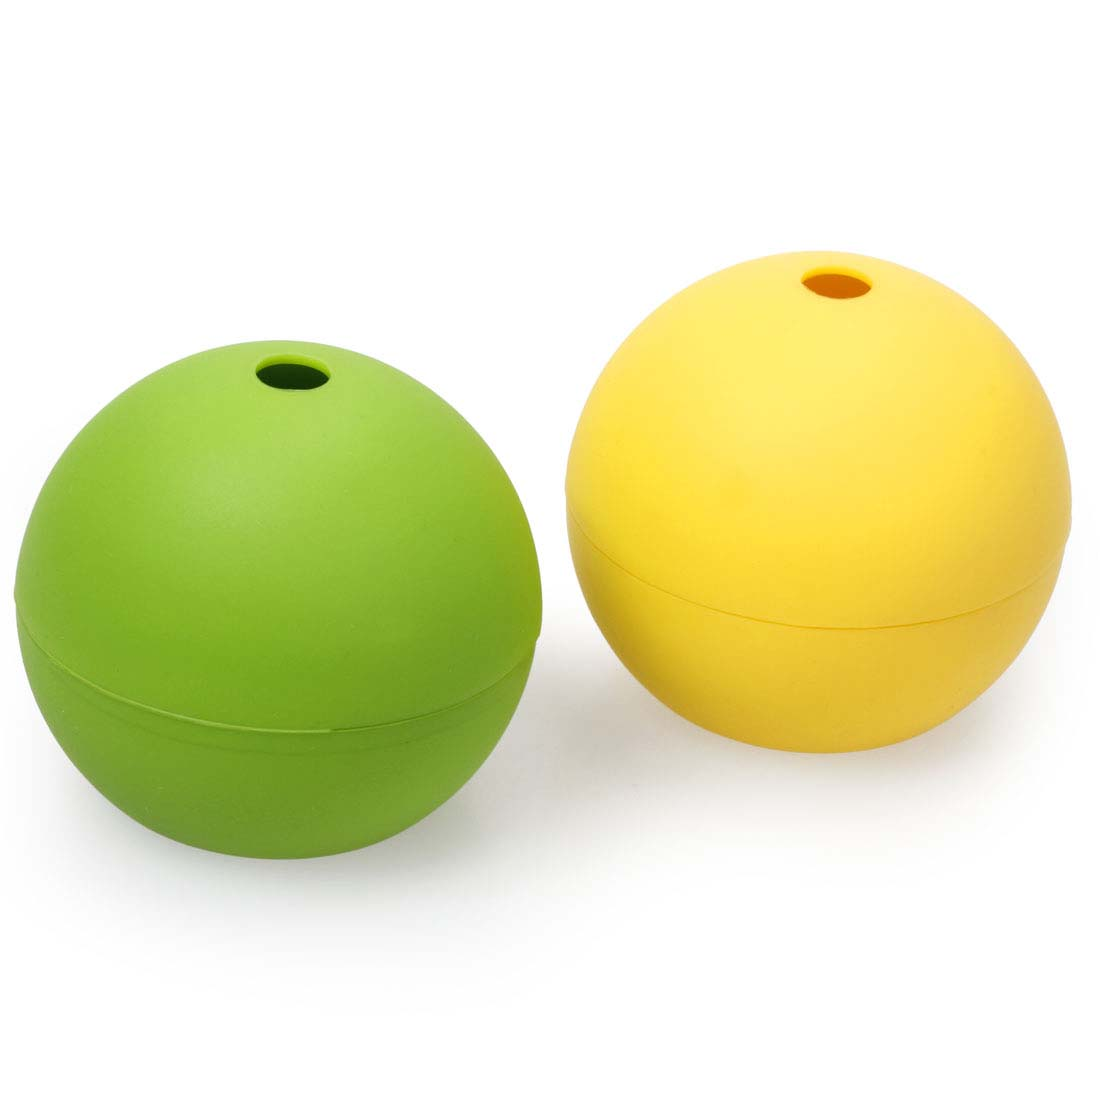 Bundle Monster BPA Free Silicone Ball Shaped Ice Maker Molds